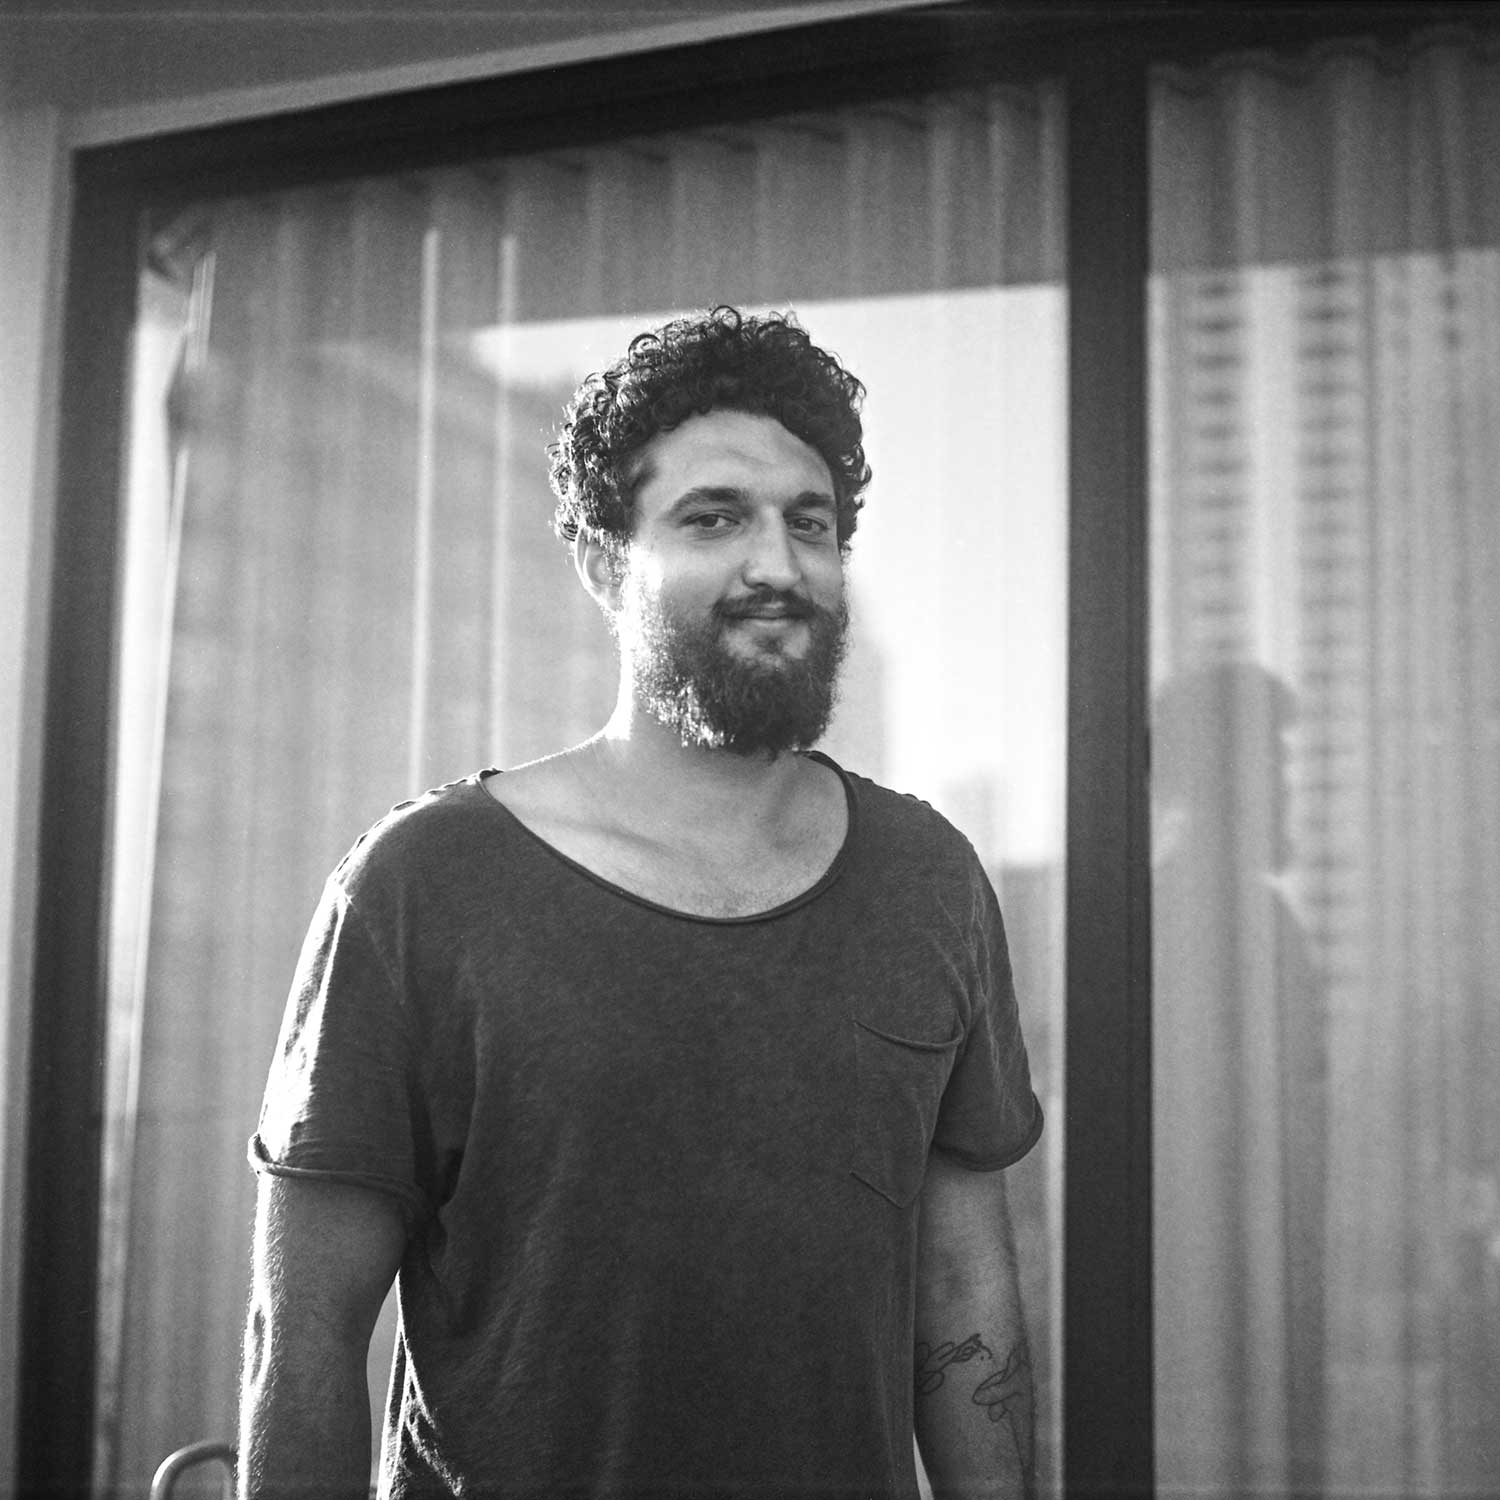 black and white photo of Assistant Producer Pedru Carvalho in front of glass door